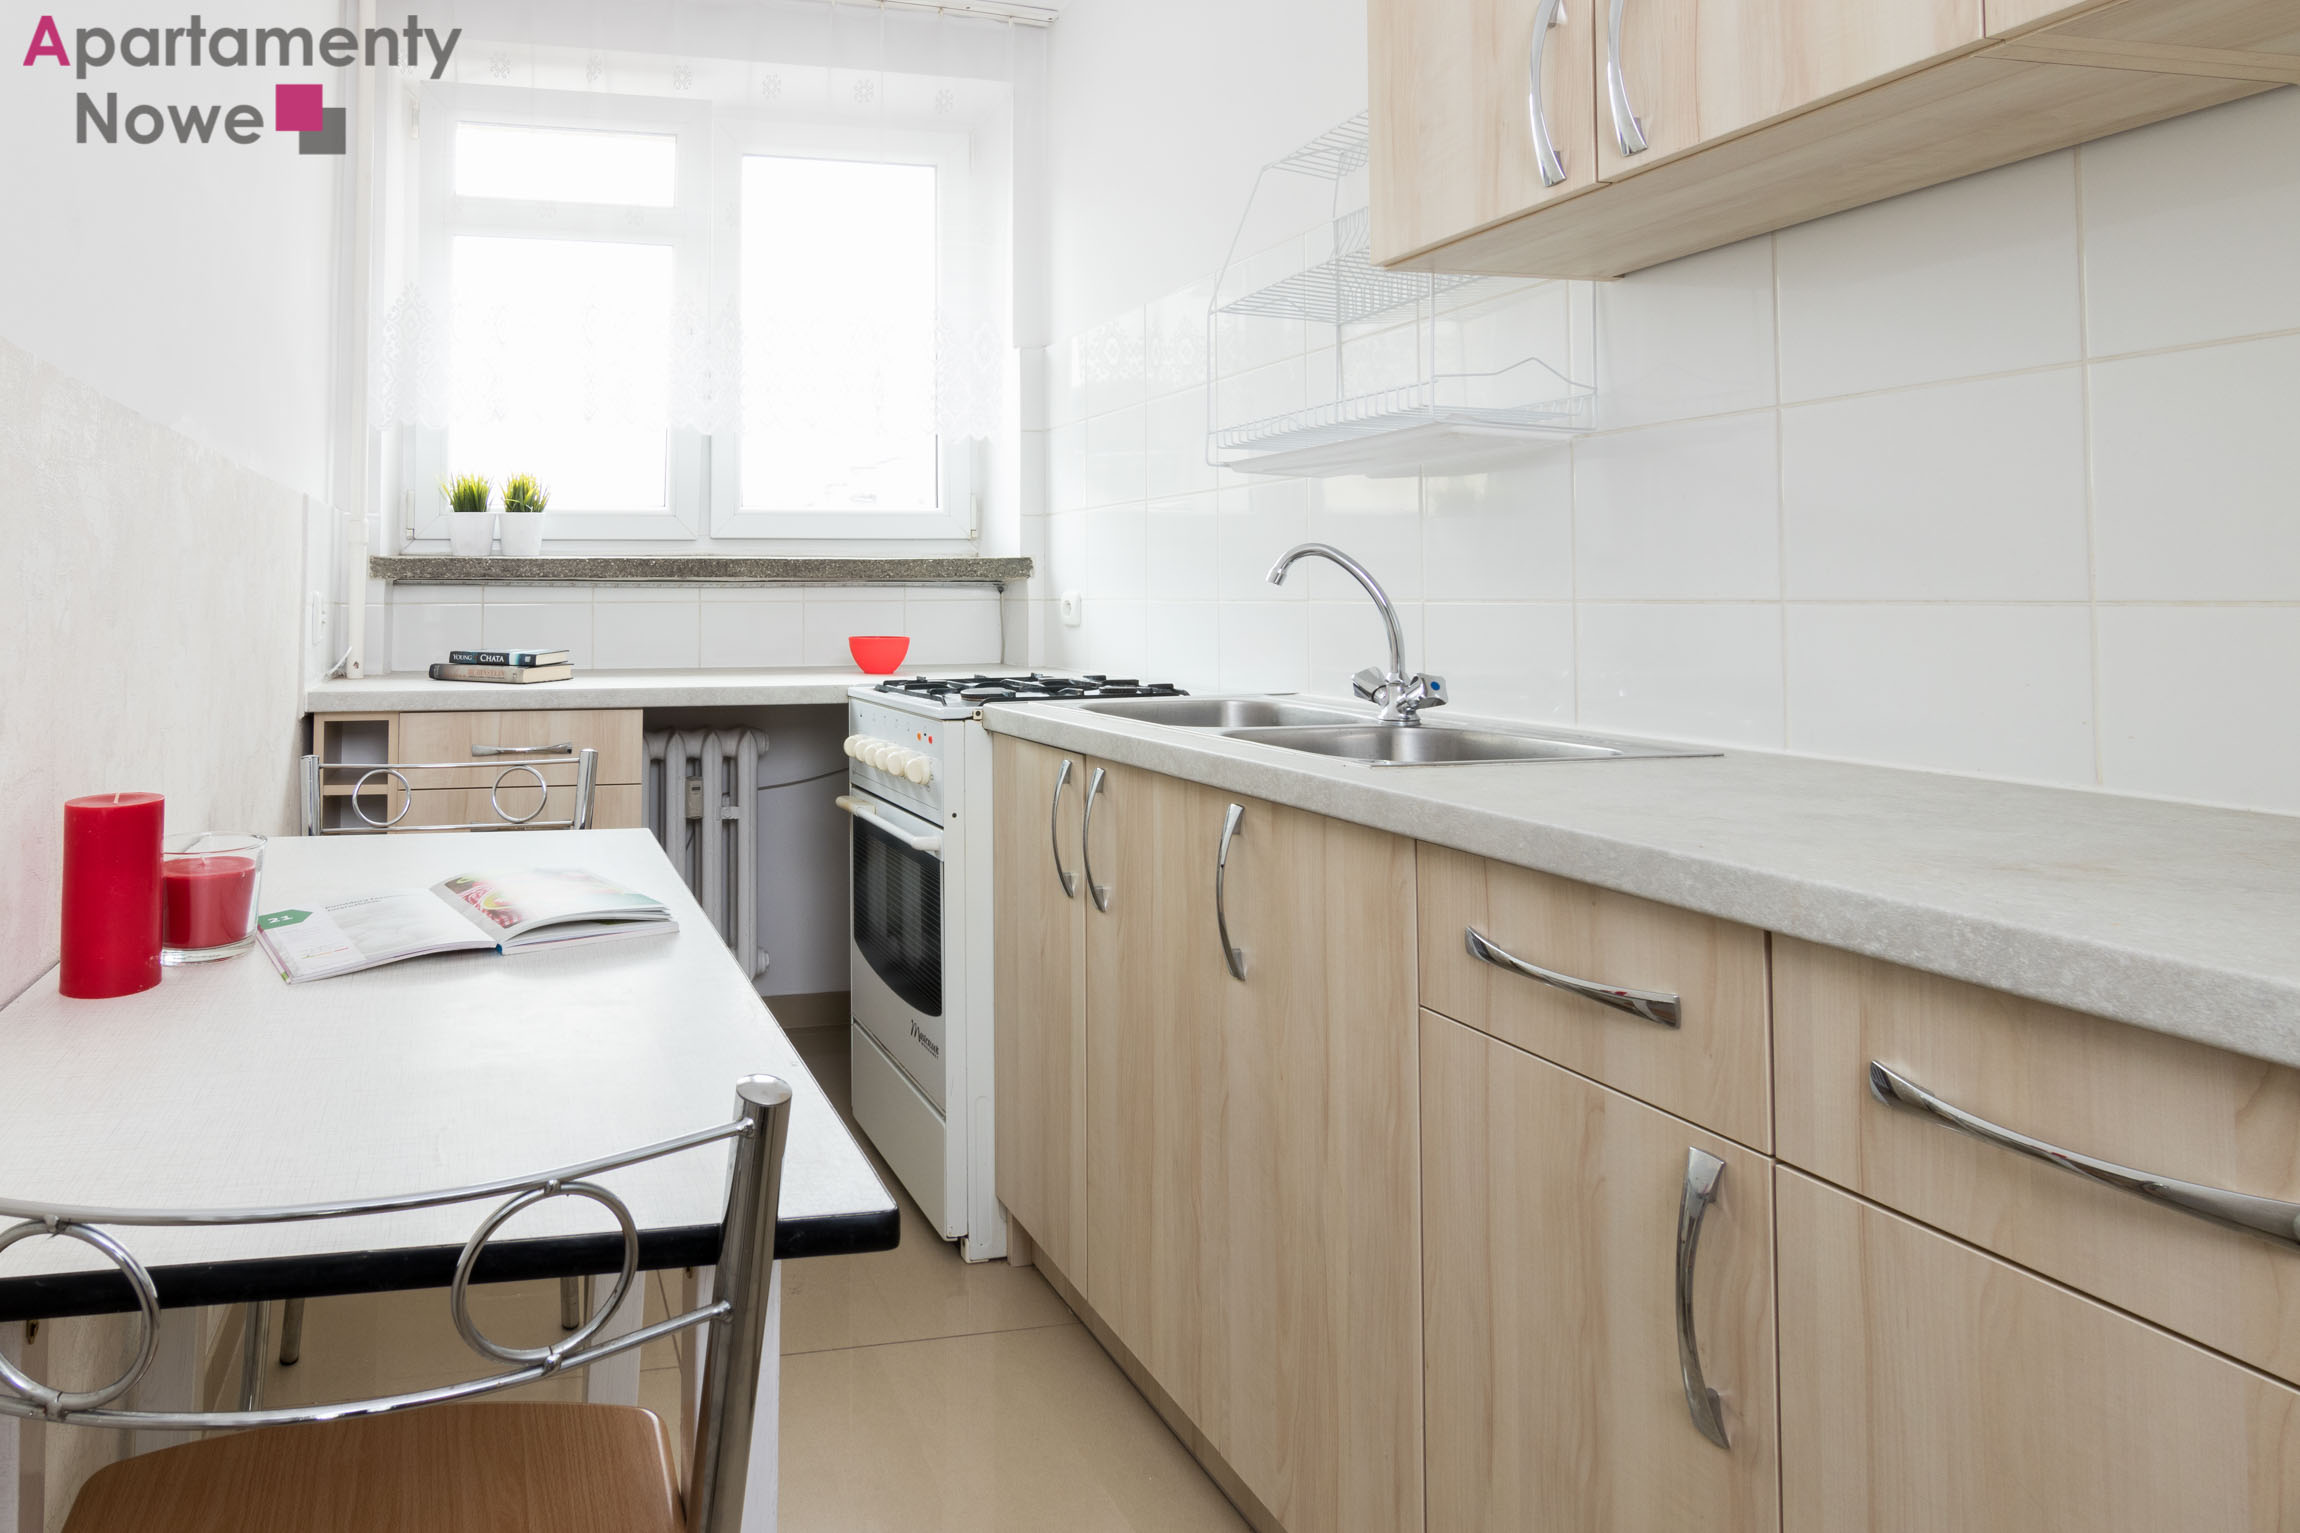 Enchanting The City Kitchen Images - Kitchen Cabinets | Ideas ...